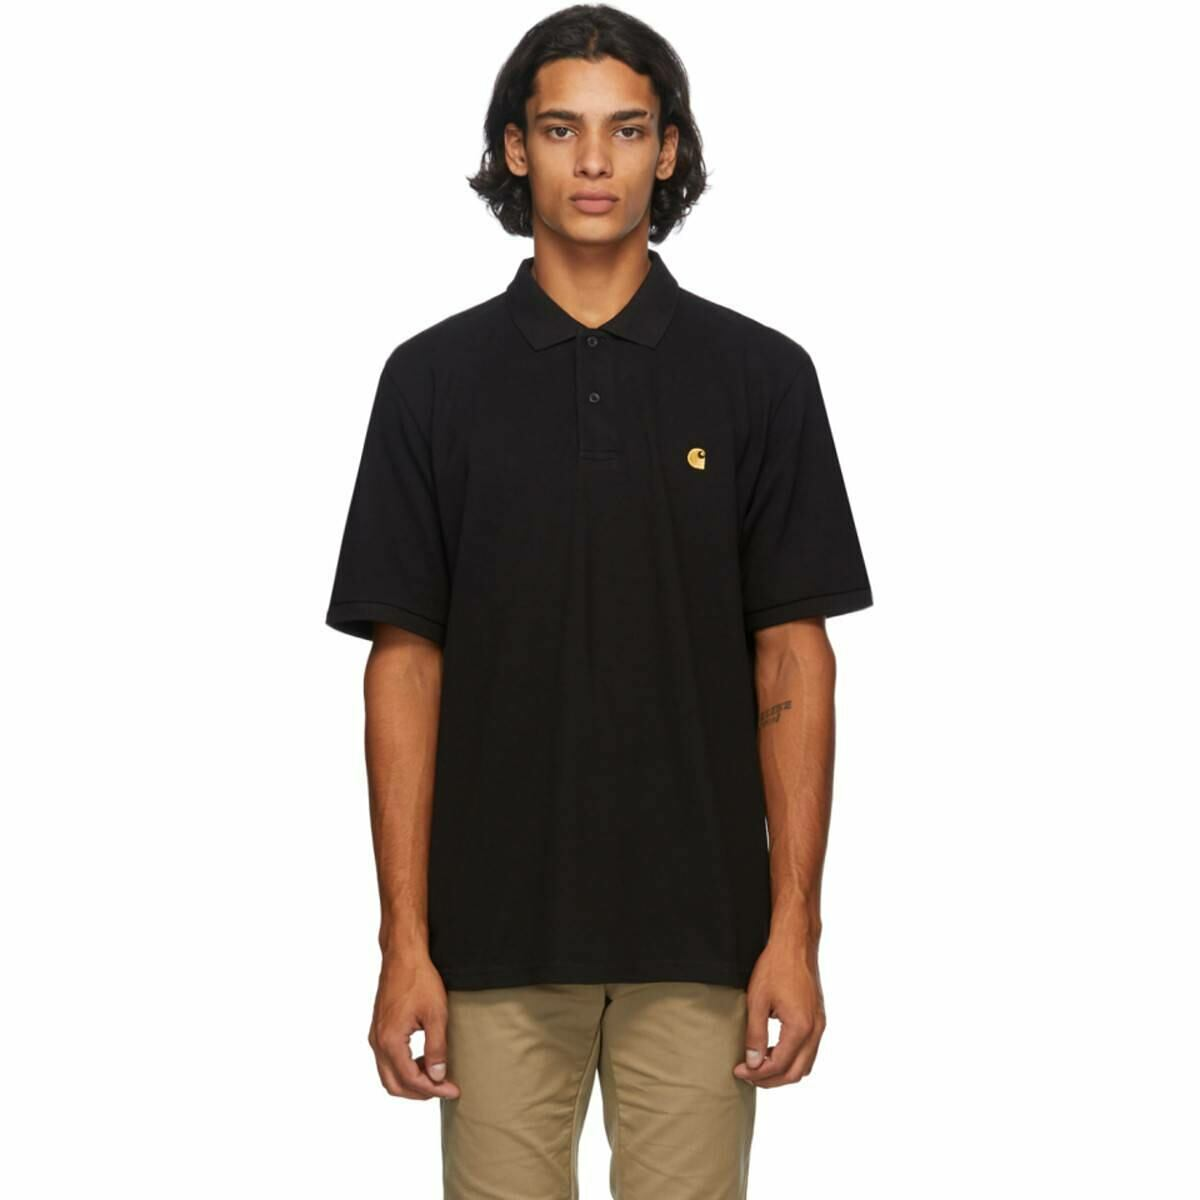 Carhartt Work In Progress Black Chase Polo Ssense USA MEN Men FASHION Mens POLOSHIRTS